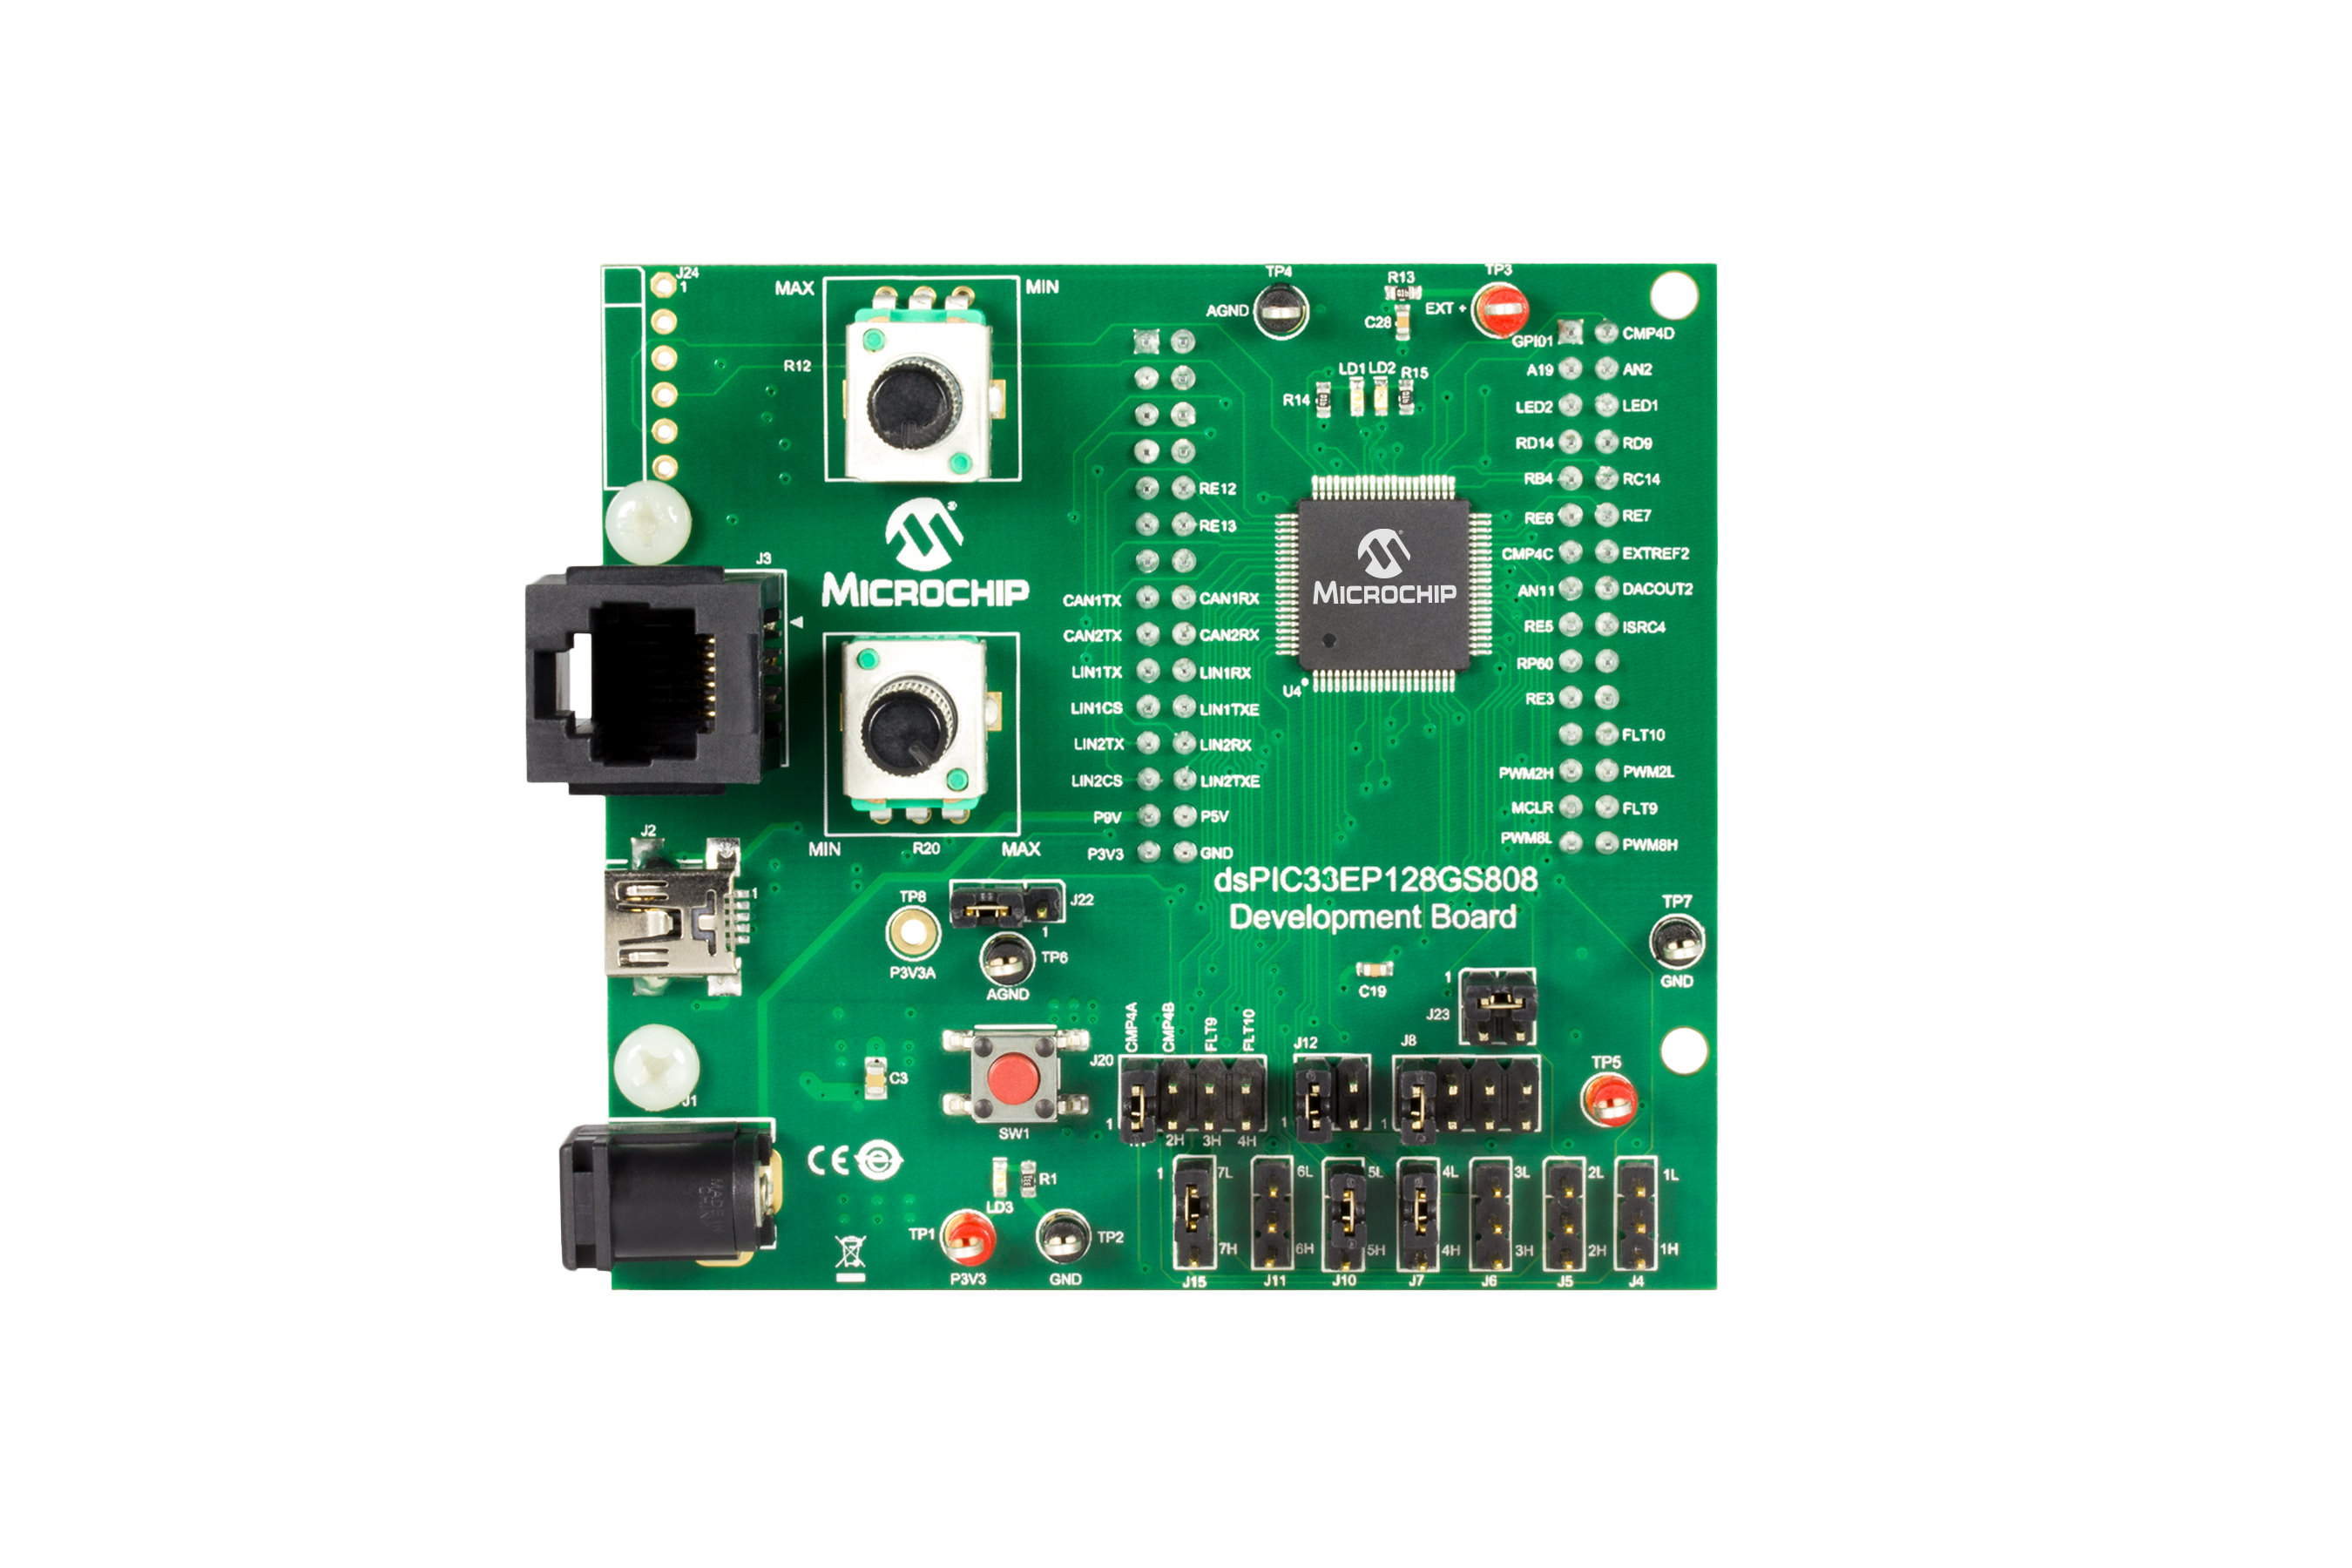 Development Tools Smps Board Tablet Circuit The Dspic33ep128gs808 Consists Of A 80 Pin Microcontroller For Operating On Standalone Basis Or Interfacing With Can Lin J2602 Pictail